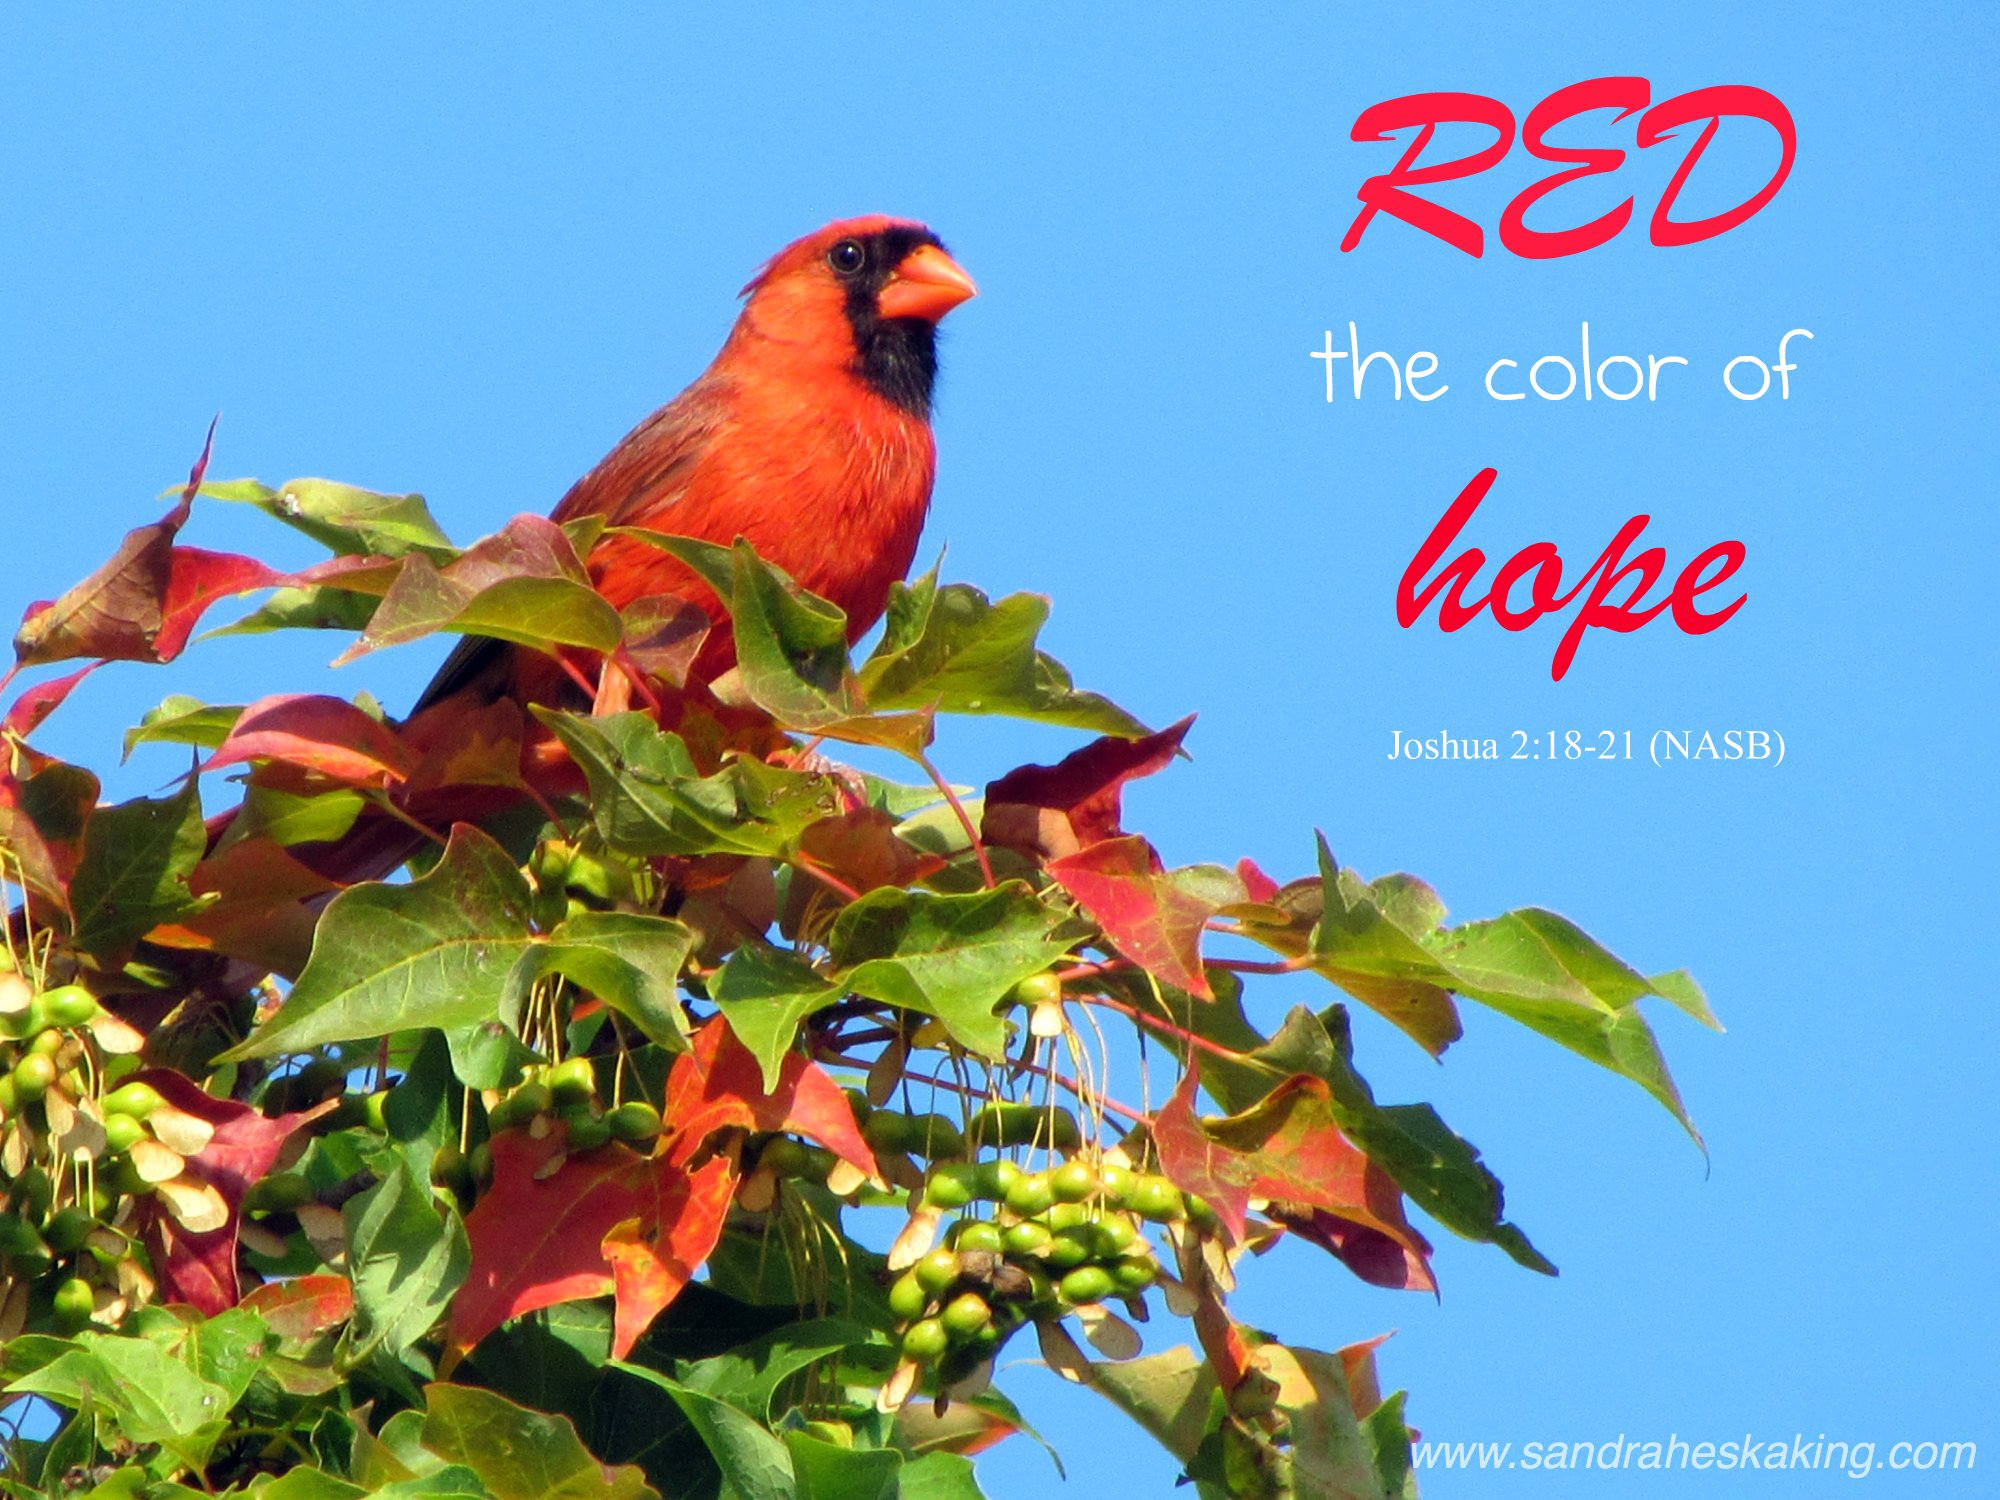 red color of hope